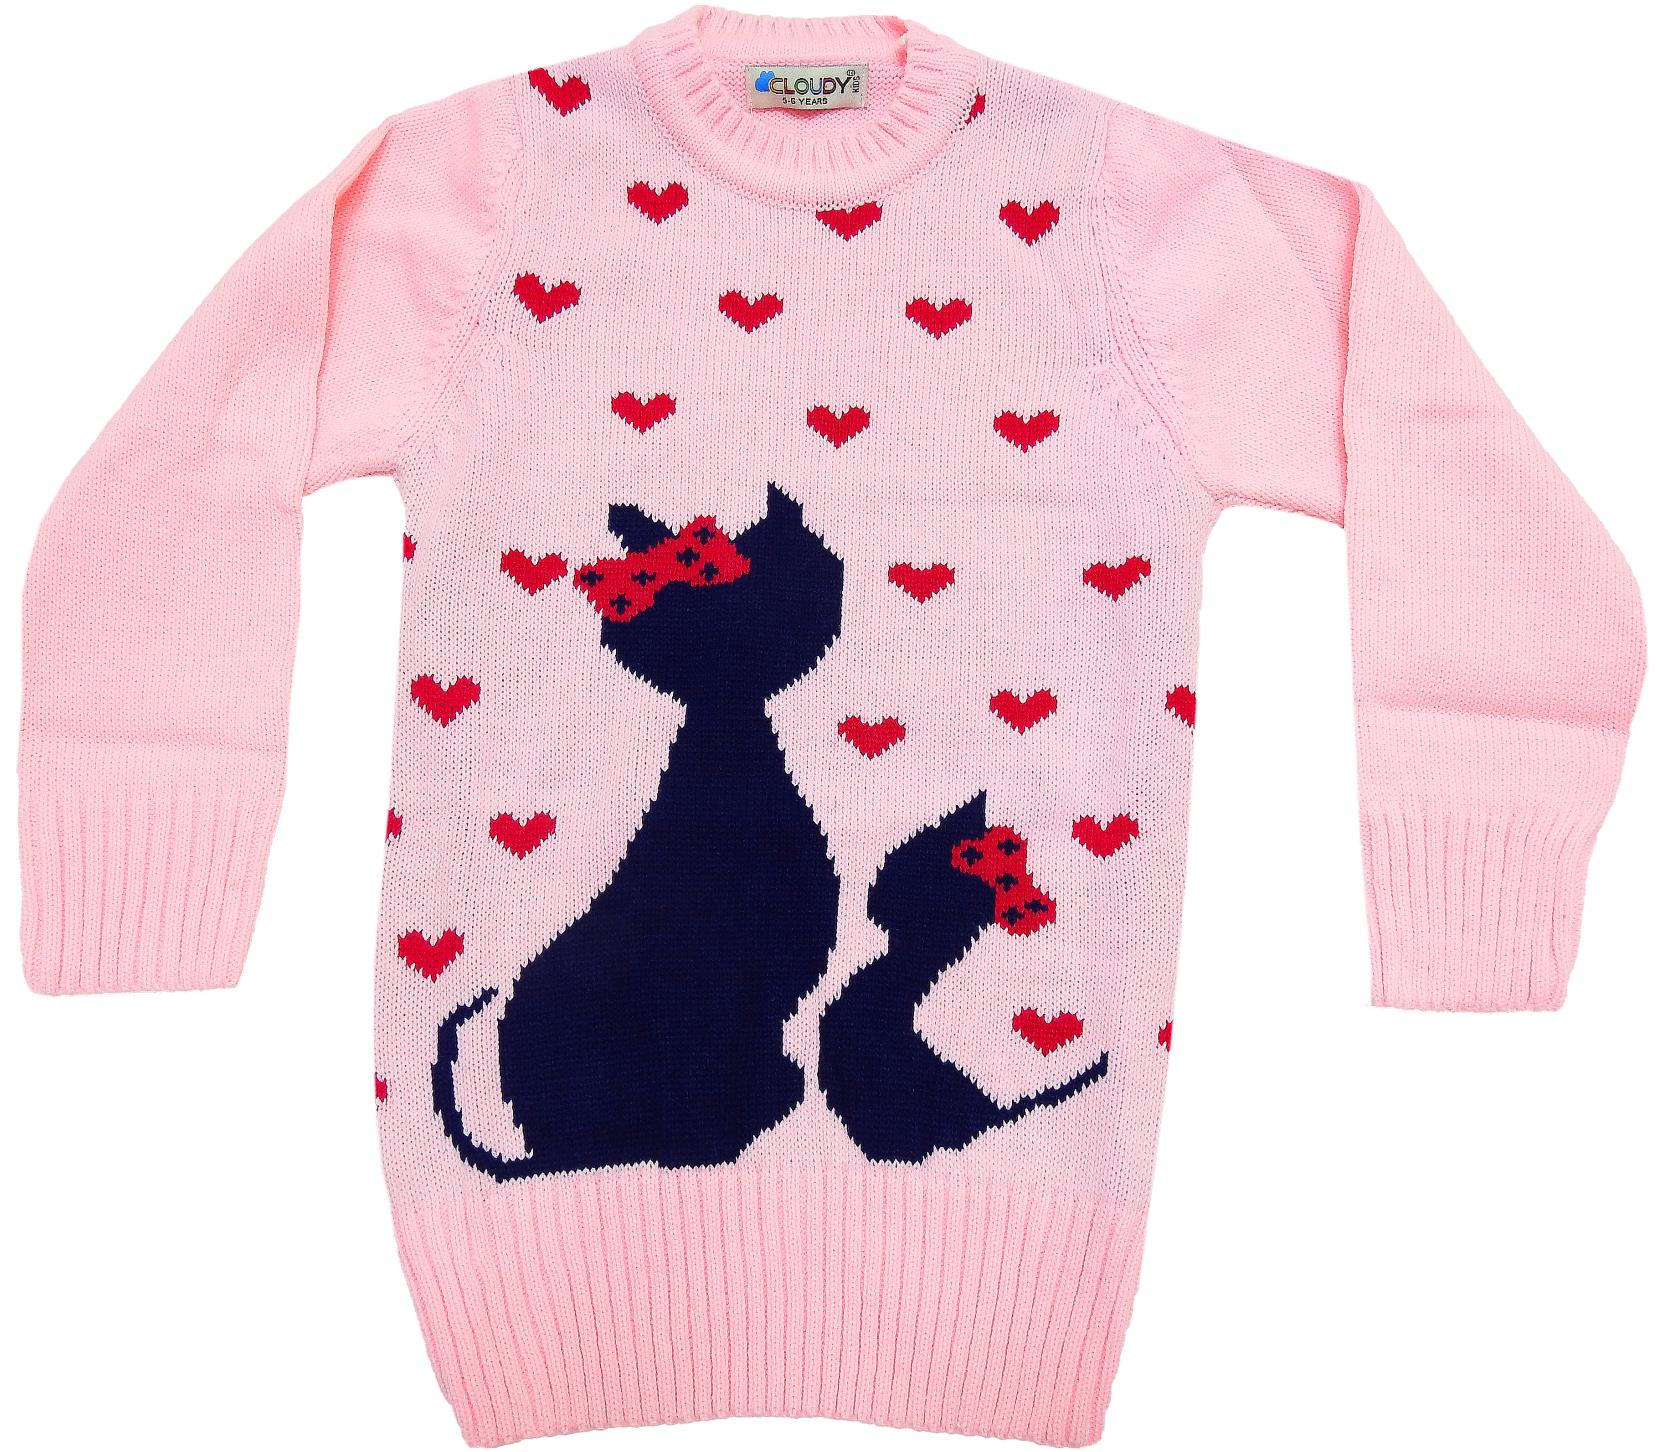 WHOLESALE CAT AND HEATRS PRINT DESIGNED TUNIC FOR GIRL (5-7-9 AGE)